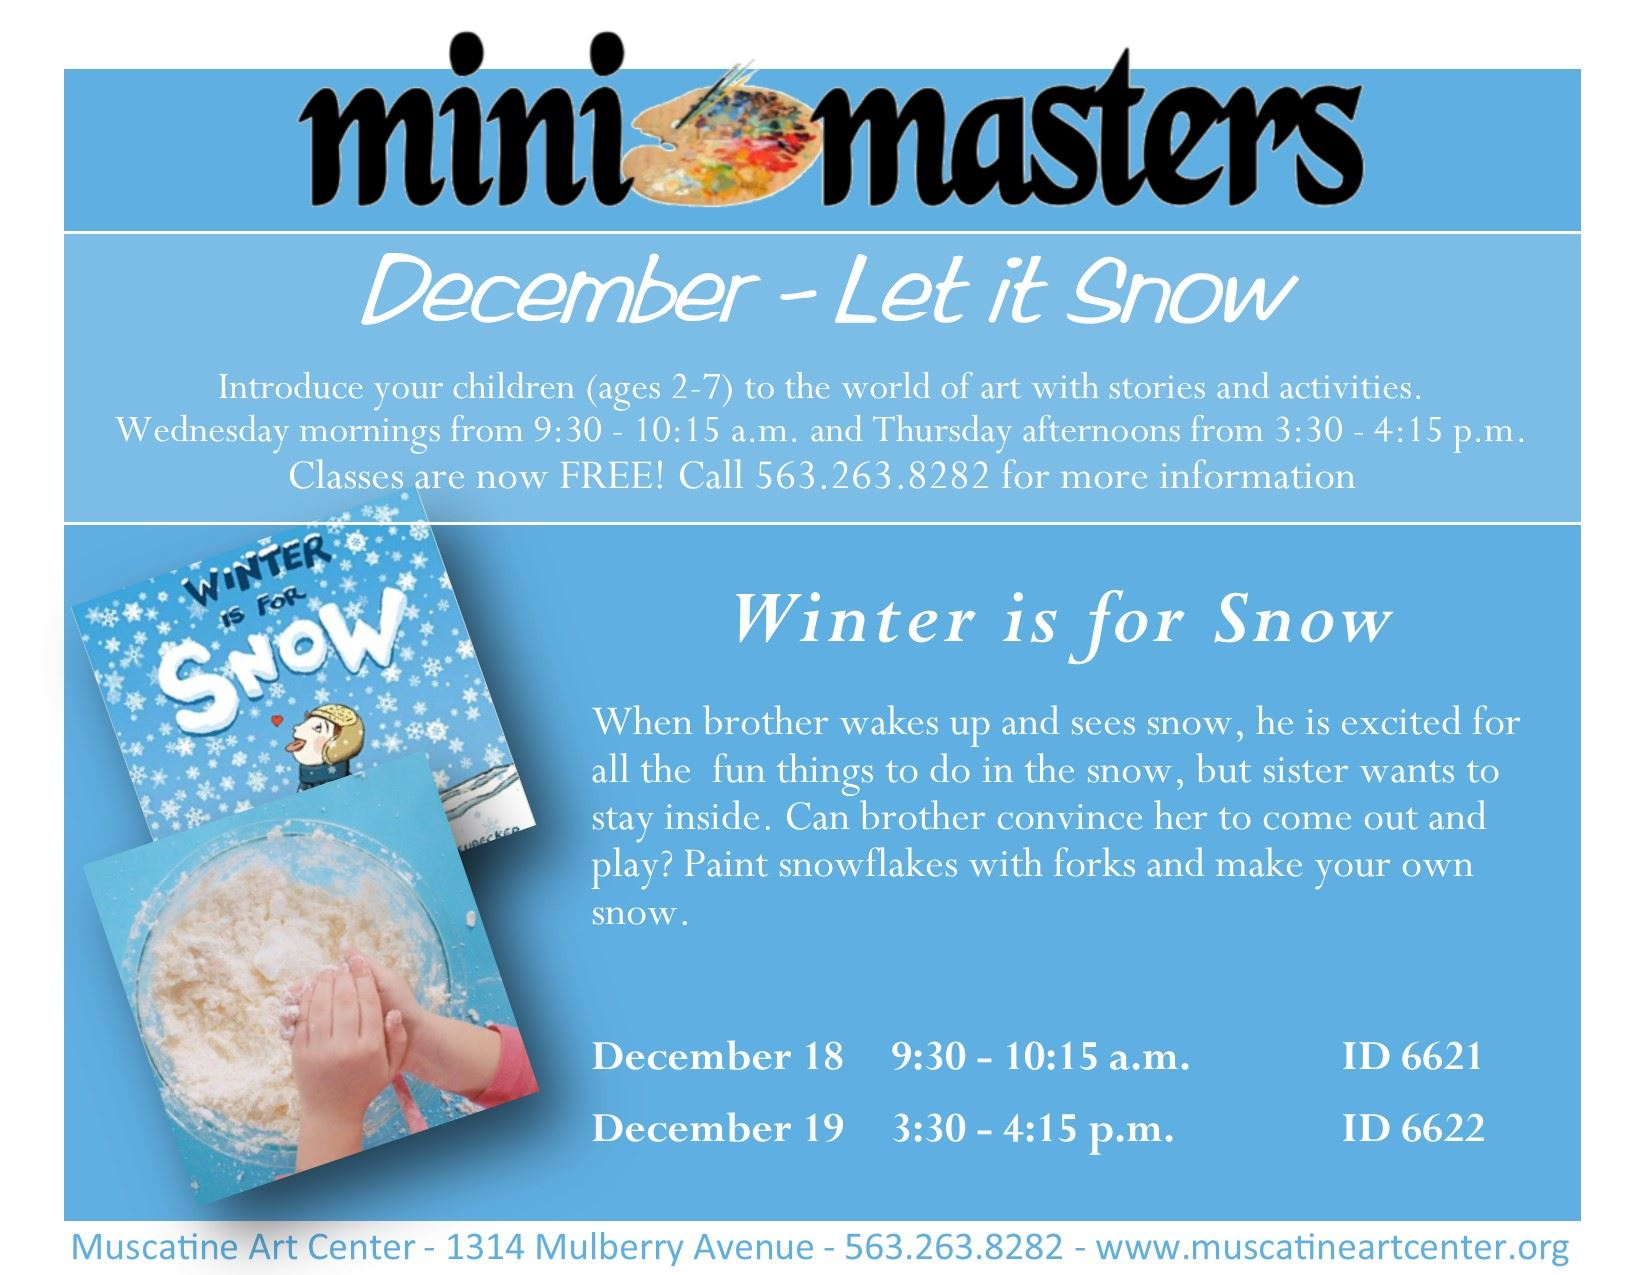 December 18-19 - Winter is for Snow - mini masters